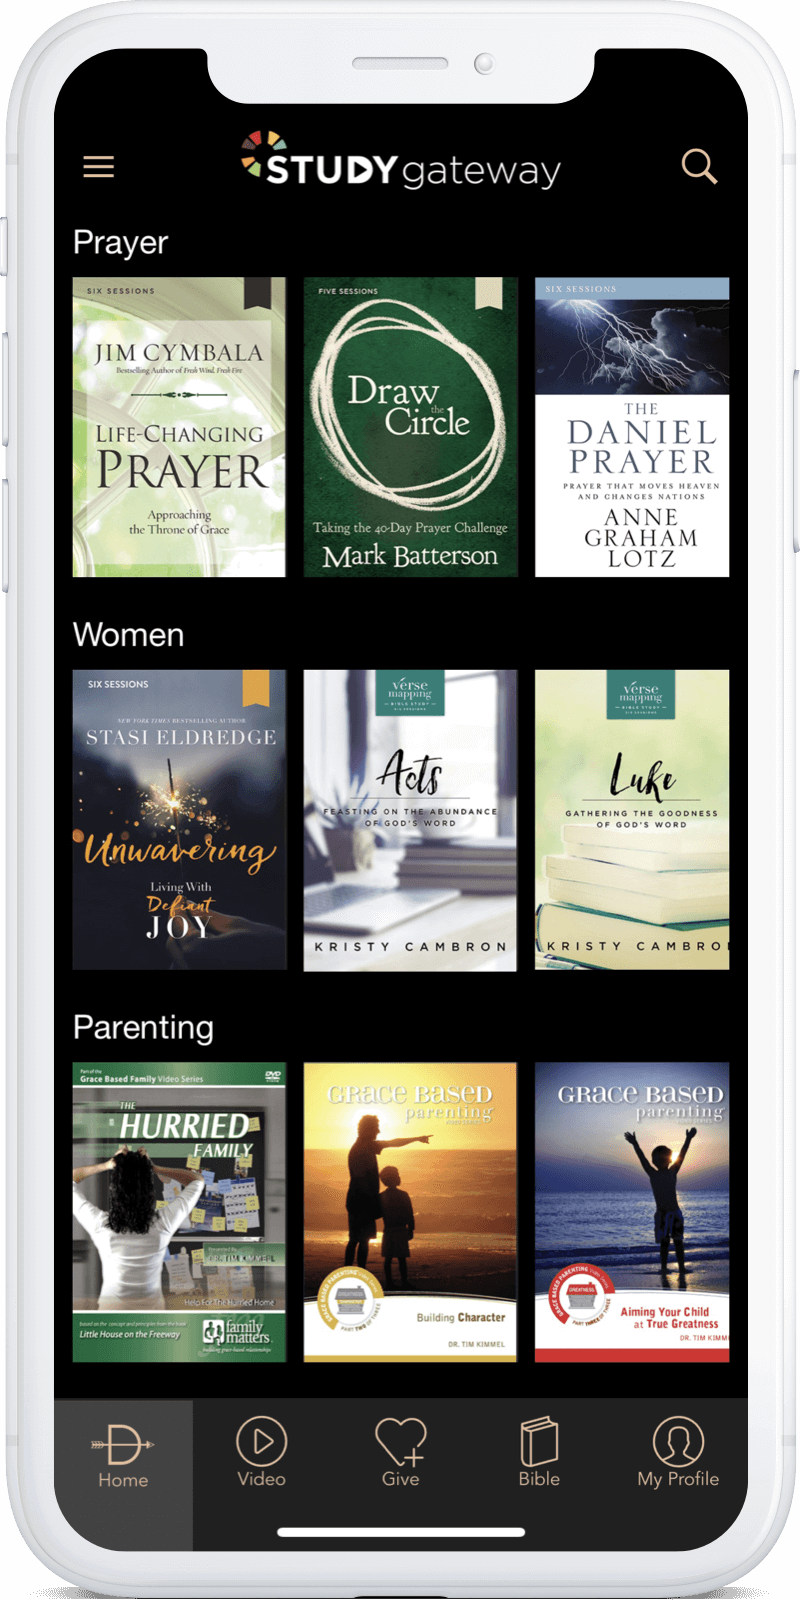 Access thousands of video Bible studies